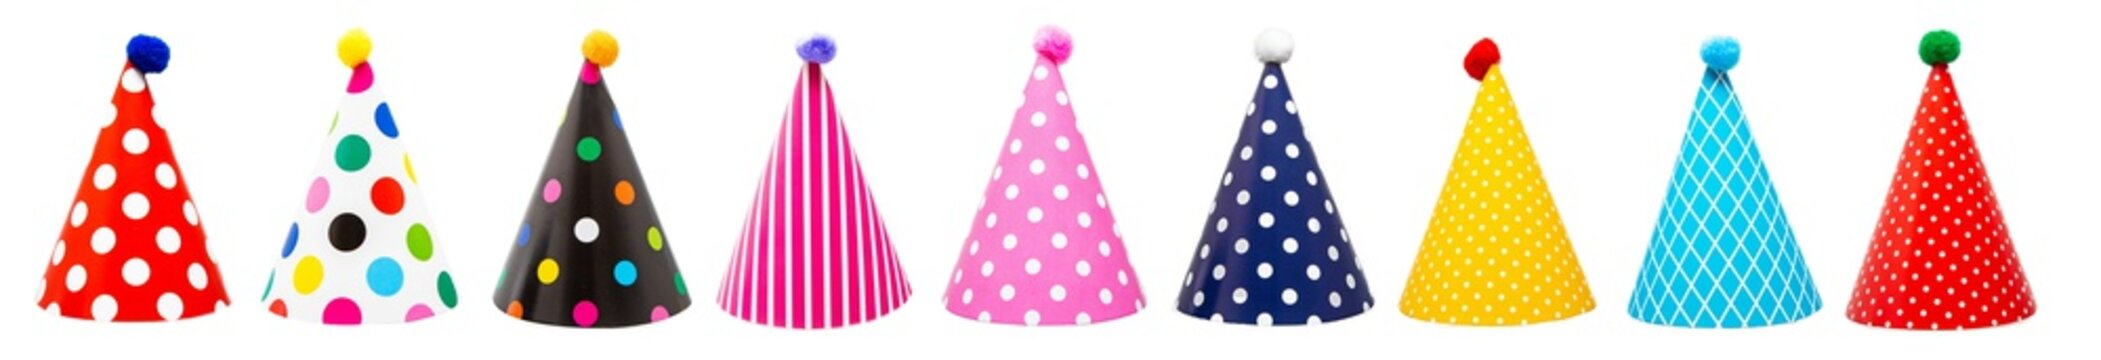 Nine Festive Birthday Party Hats Isolated